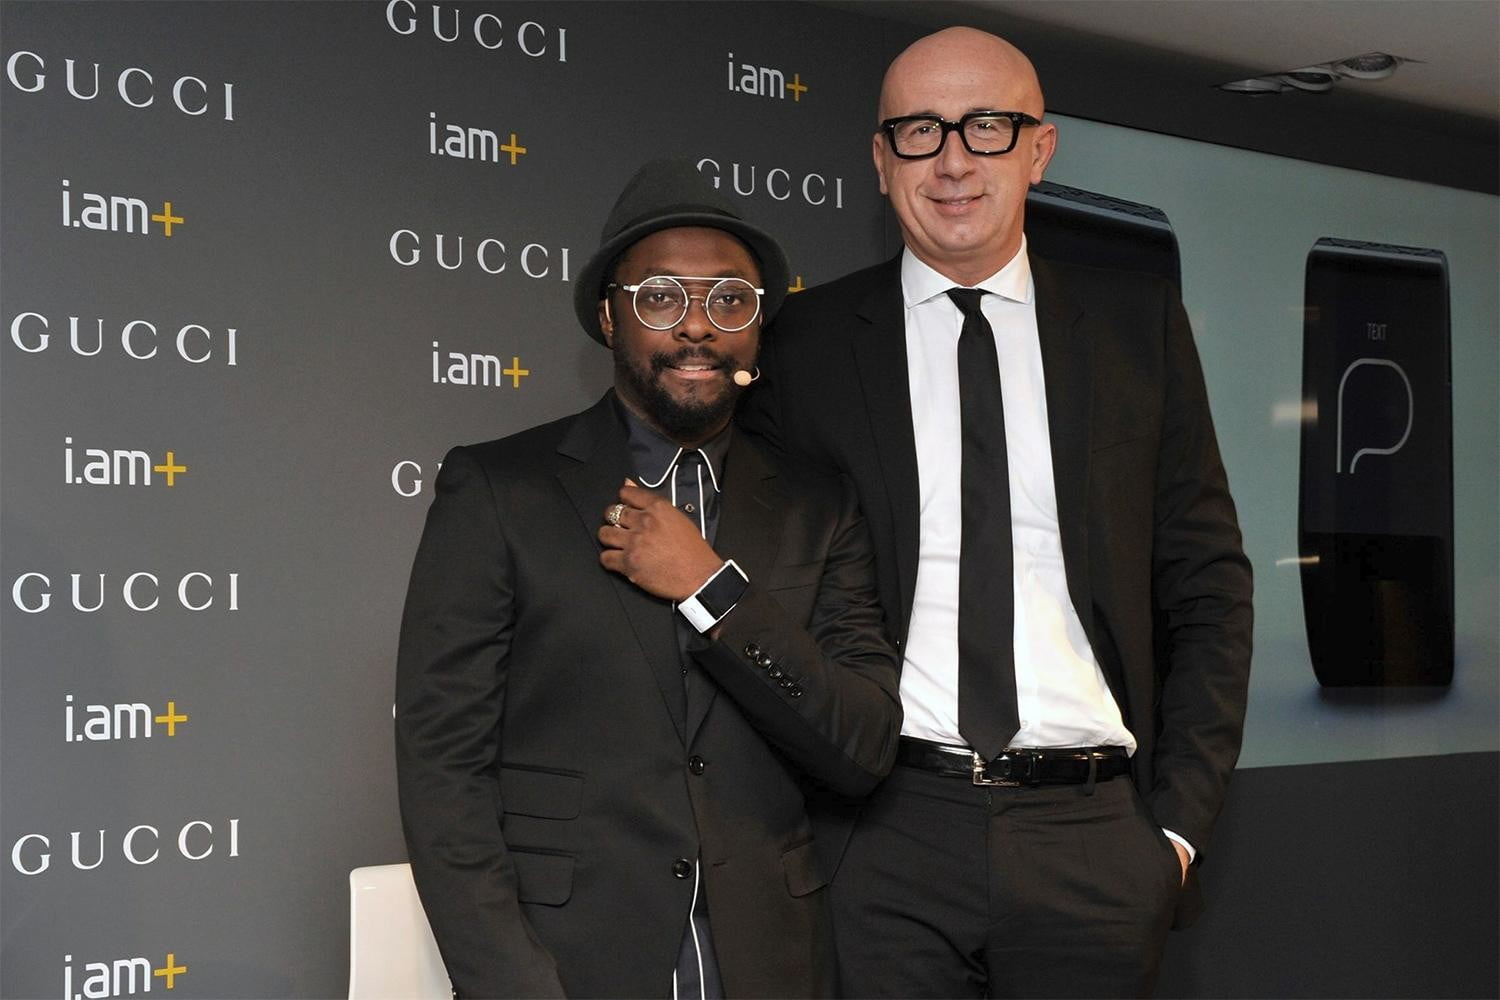 Will.i.am and Gucci To Make Posh Smartband Together | Digital Trends